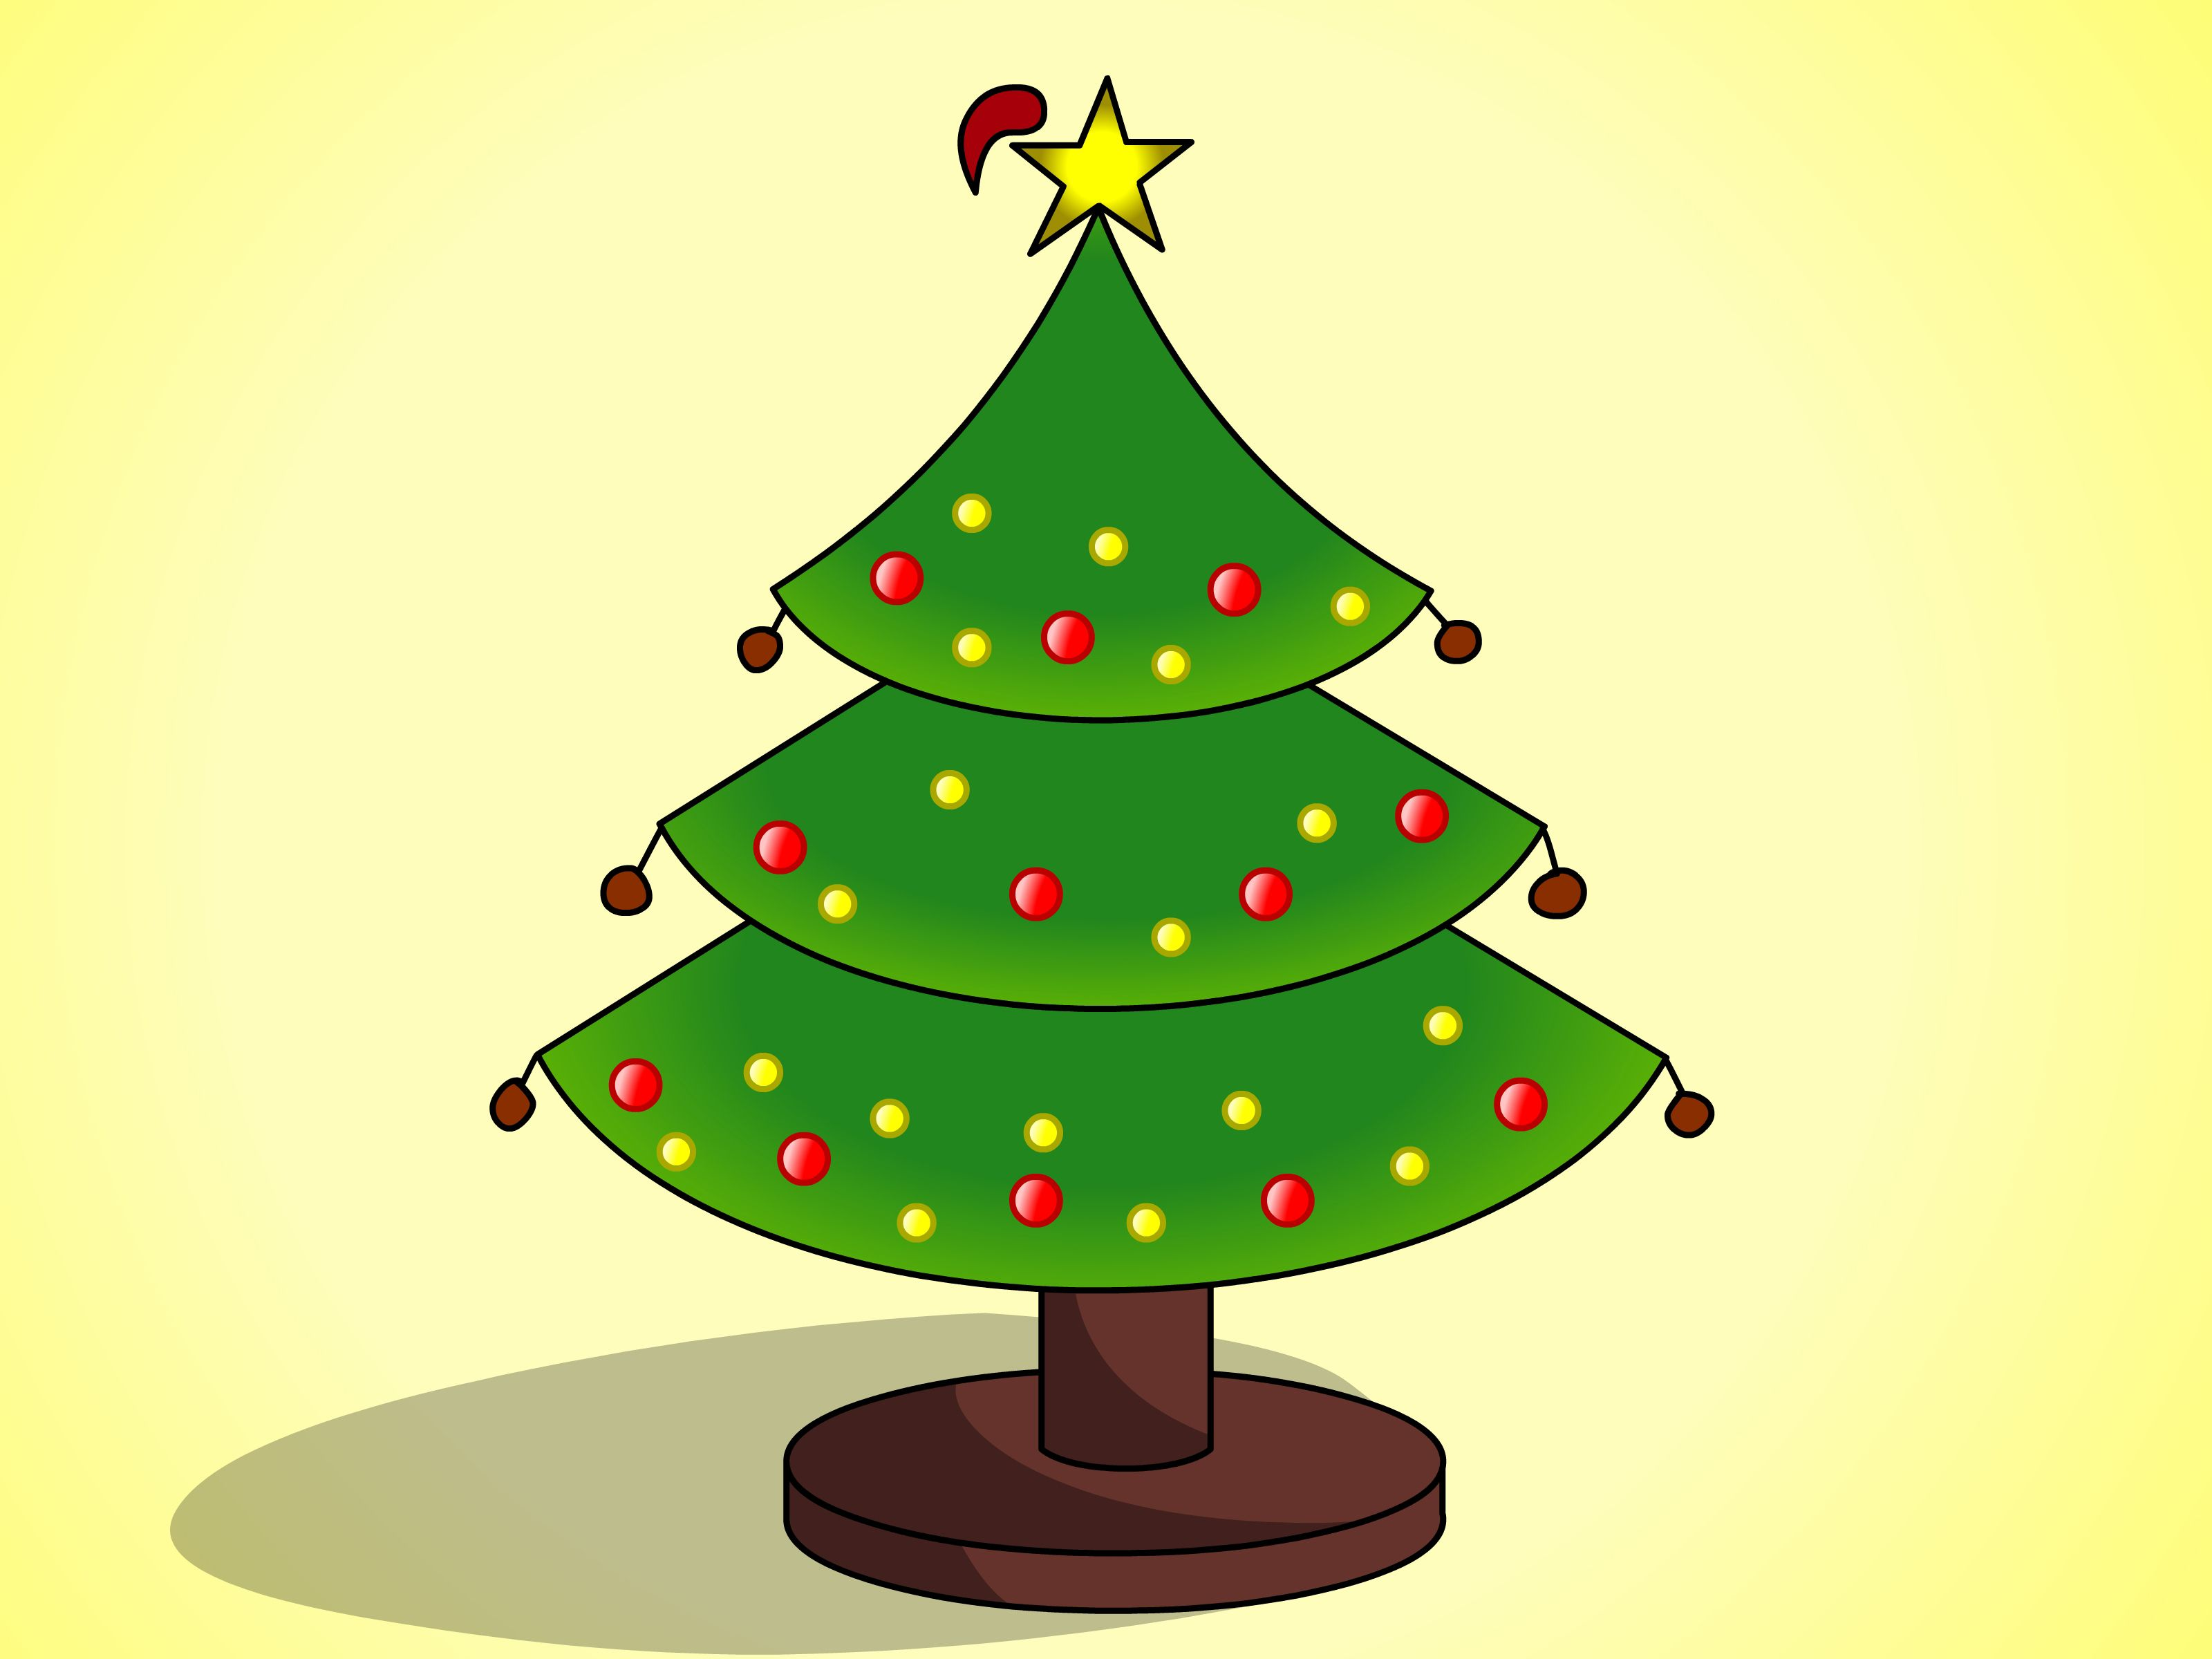 Uncategorized How To Draw A Simple Christmas Tree xmas tree picture for drawing merry christmas pinterest drawing